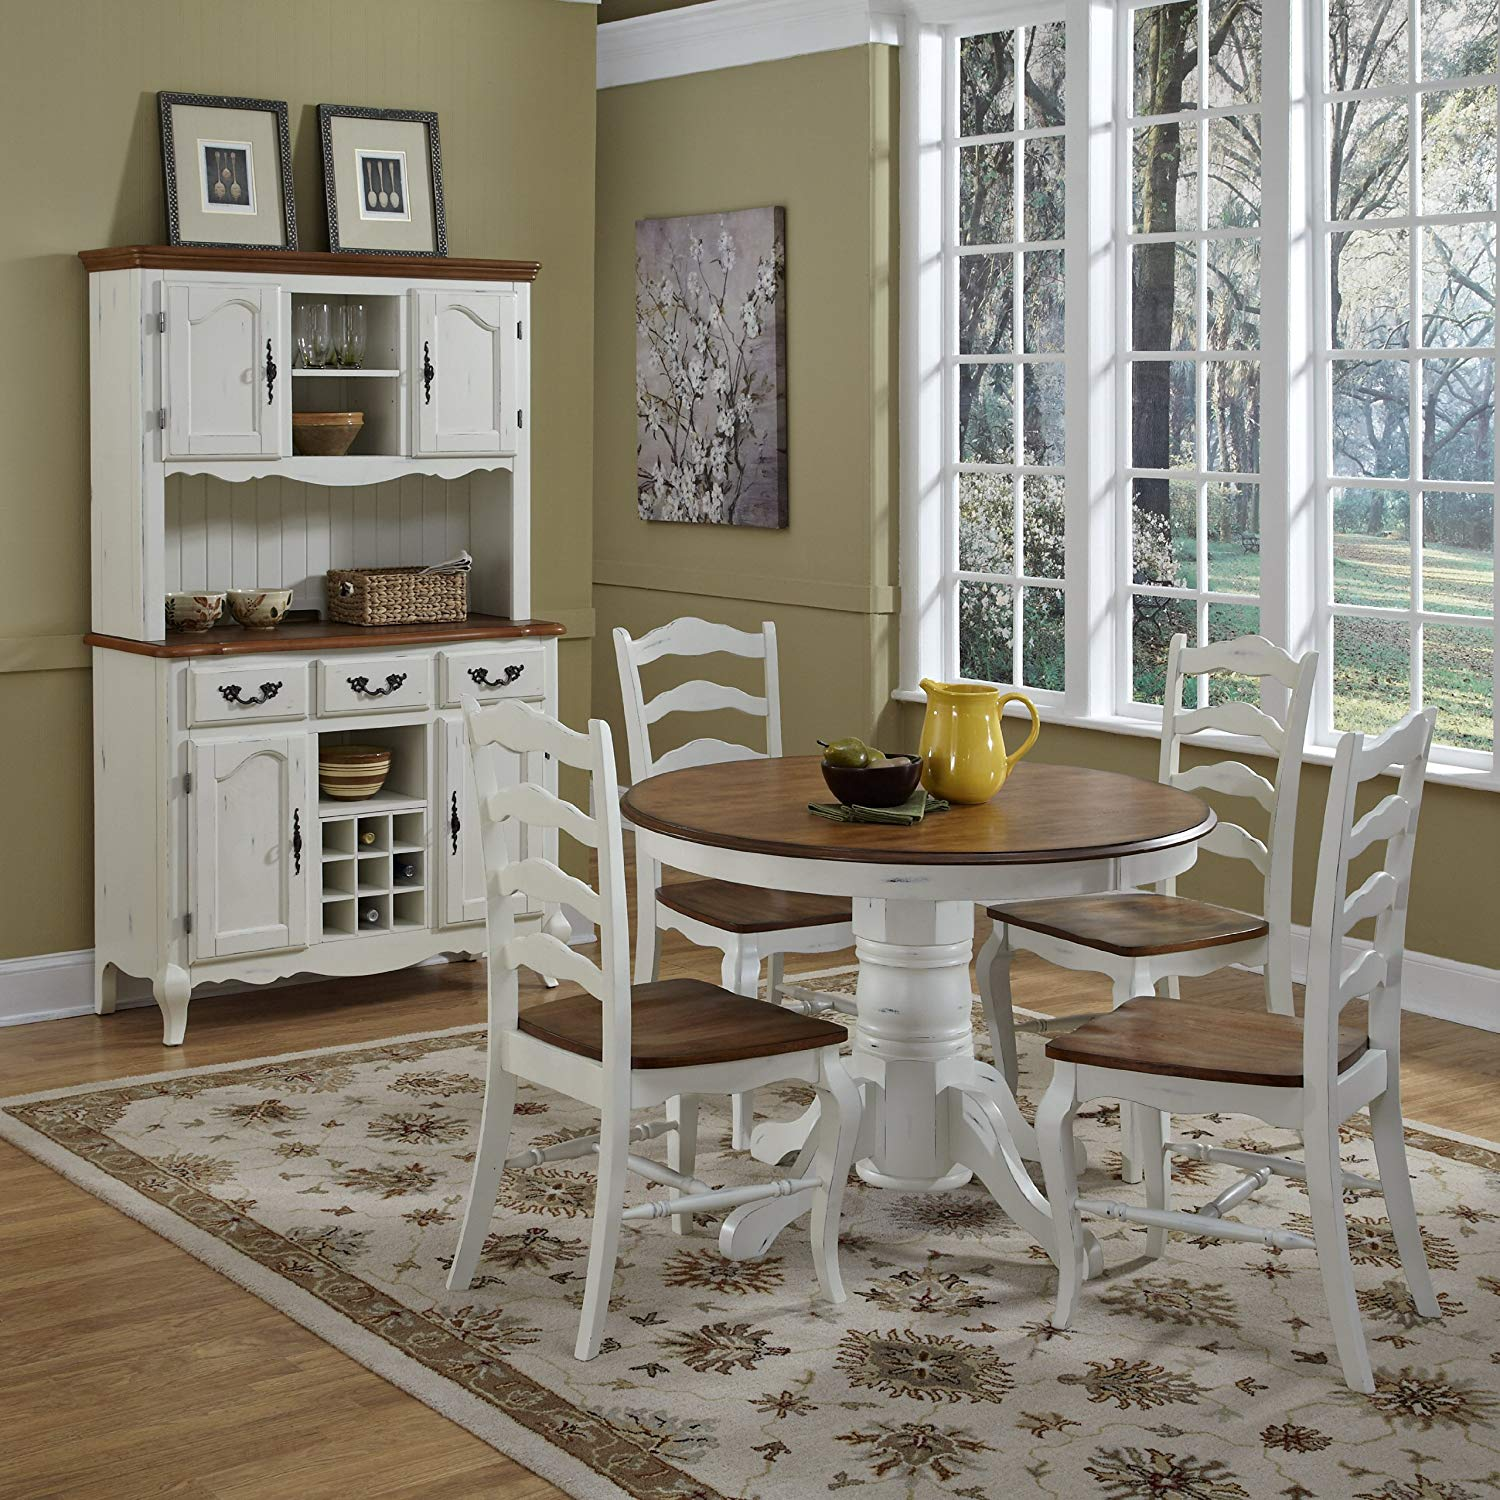 Home Styles 5518-30 The French Countryside Pedestal Table